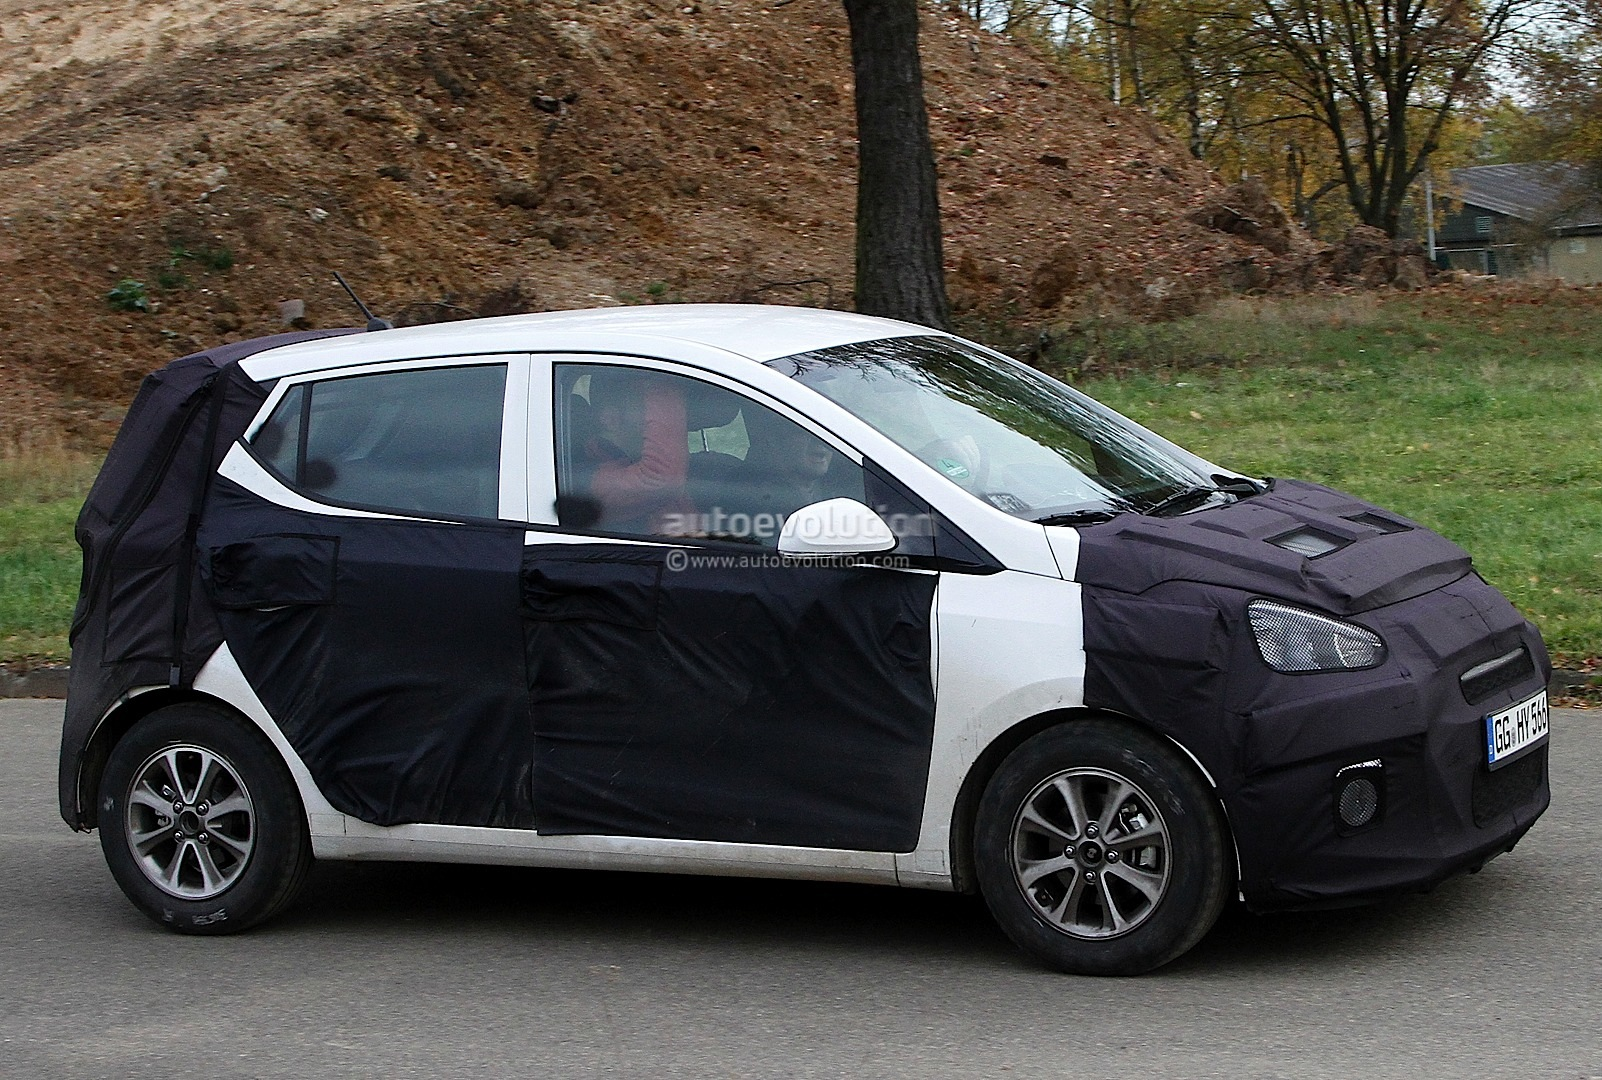 spyshots 2014 hyundai i10 autoevolution. Black Bedroom Furniture Sets. Home Design Ideas